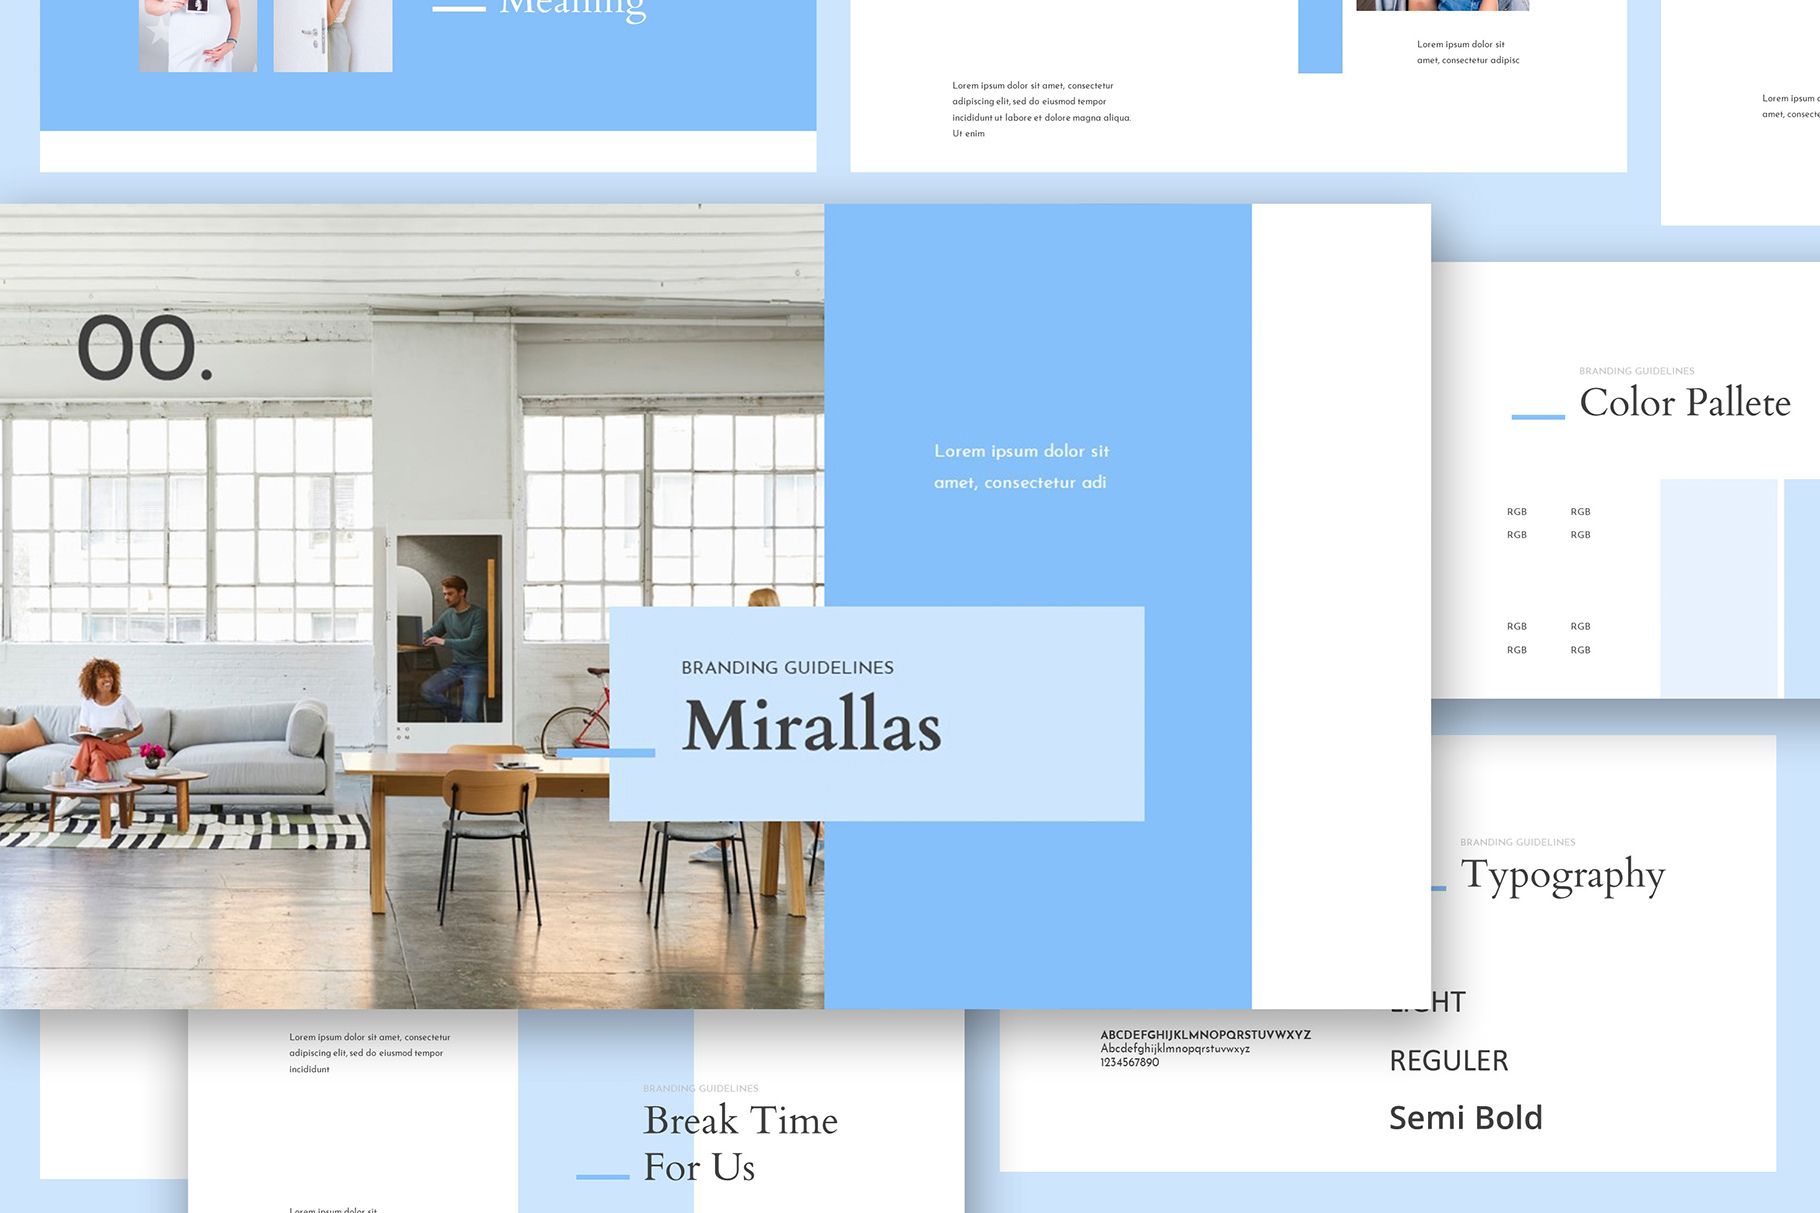 Mirallas Brand Guidelines Powerpoint example image 4